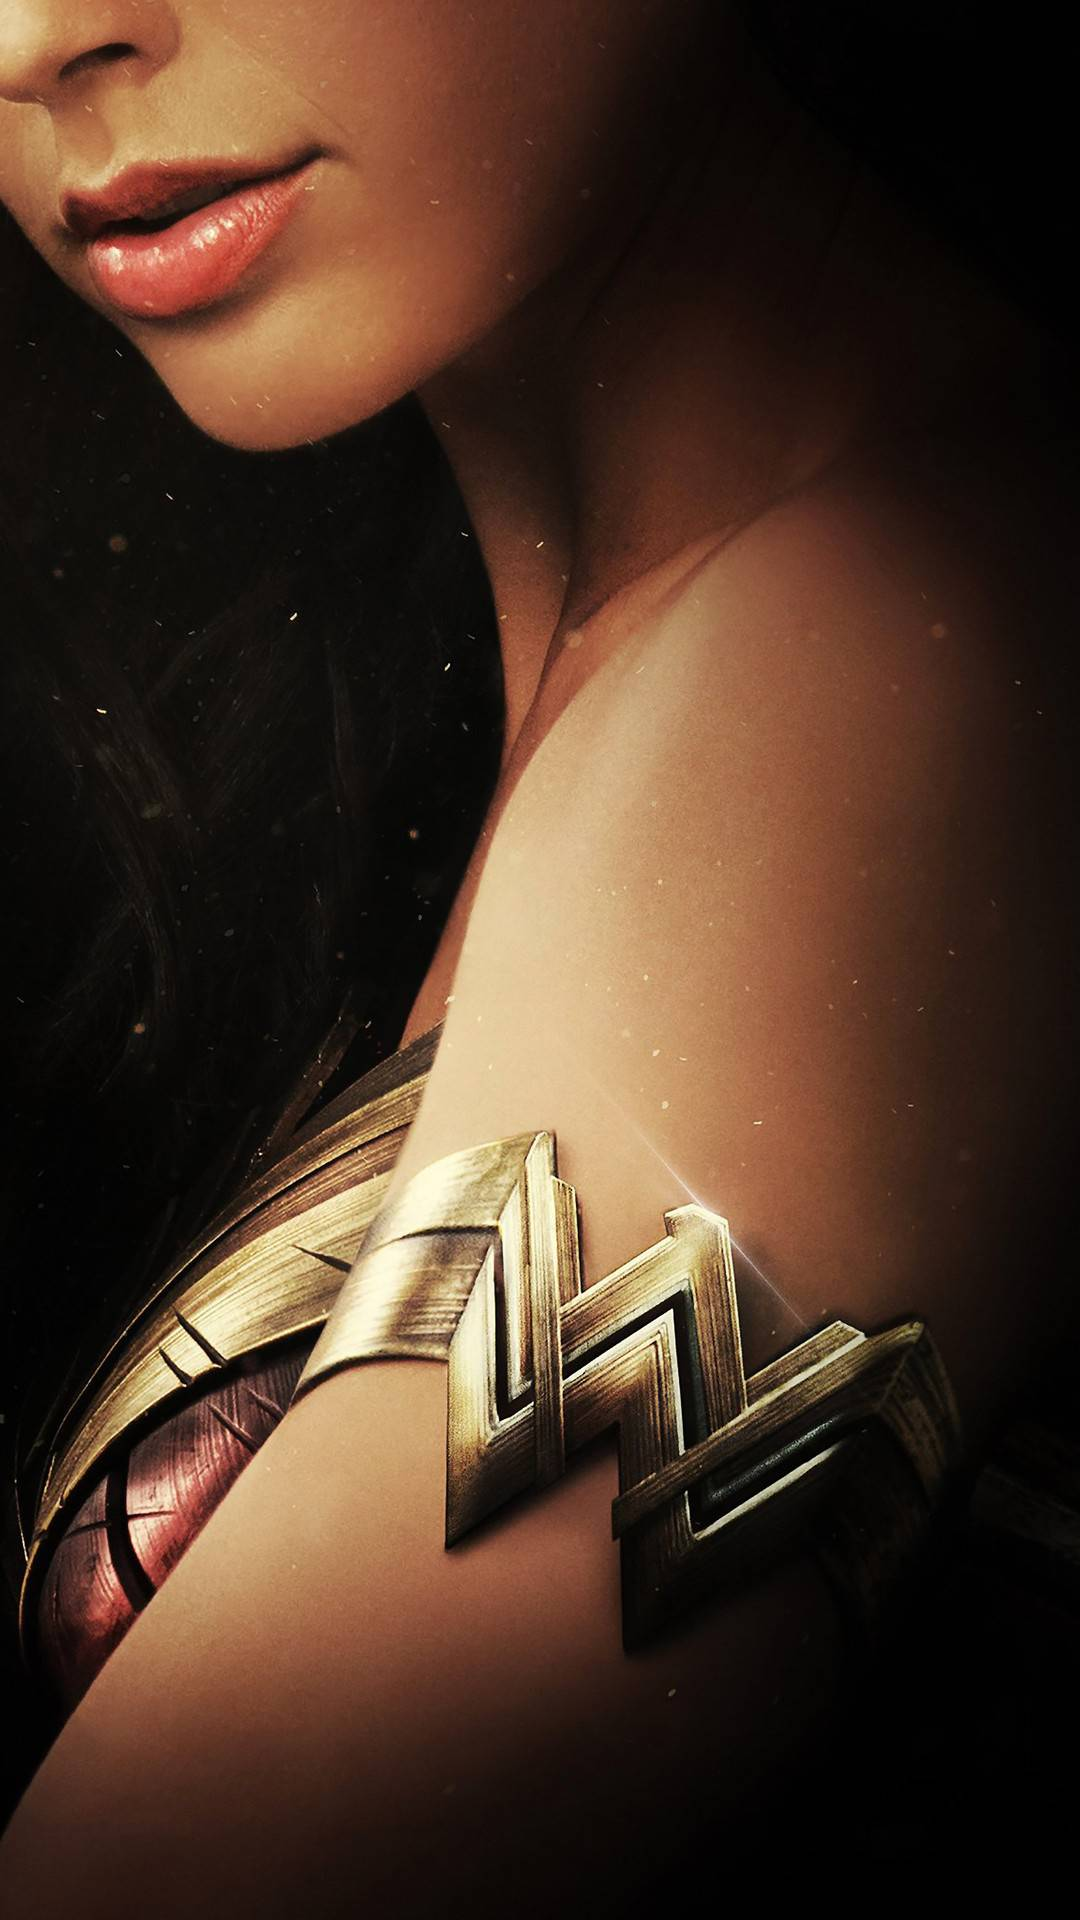 hd wonder woman wallpapers for iphone 2499947 hd wallpaper backgrounds download hd wonder woman wallpapers for iphone